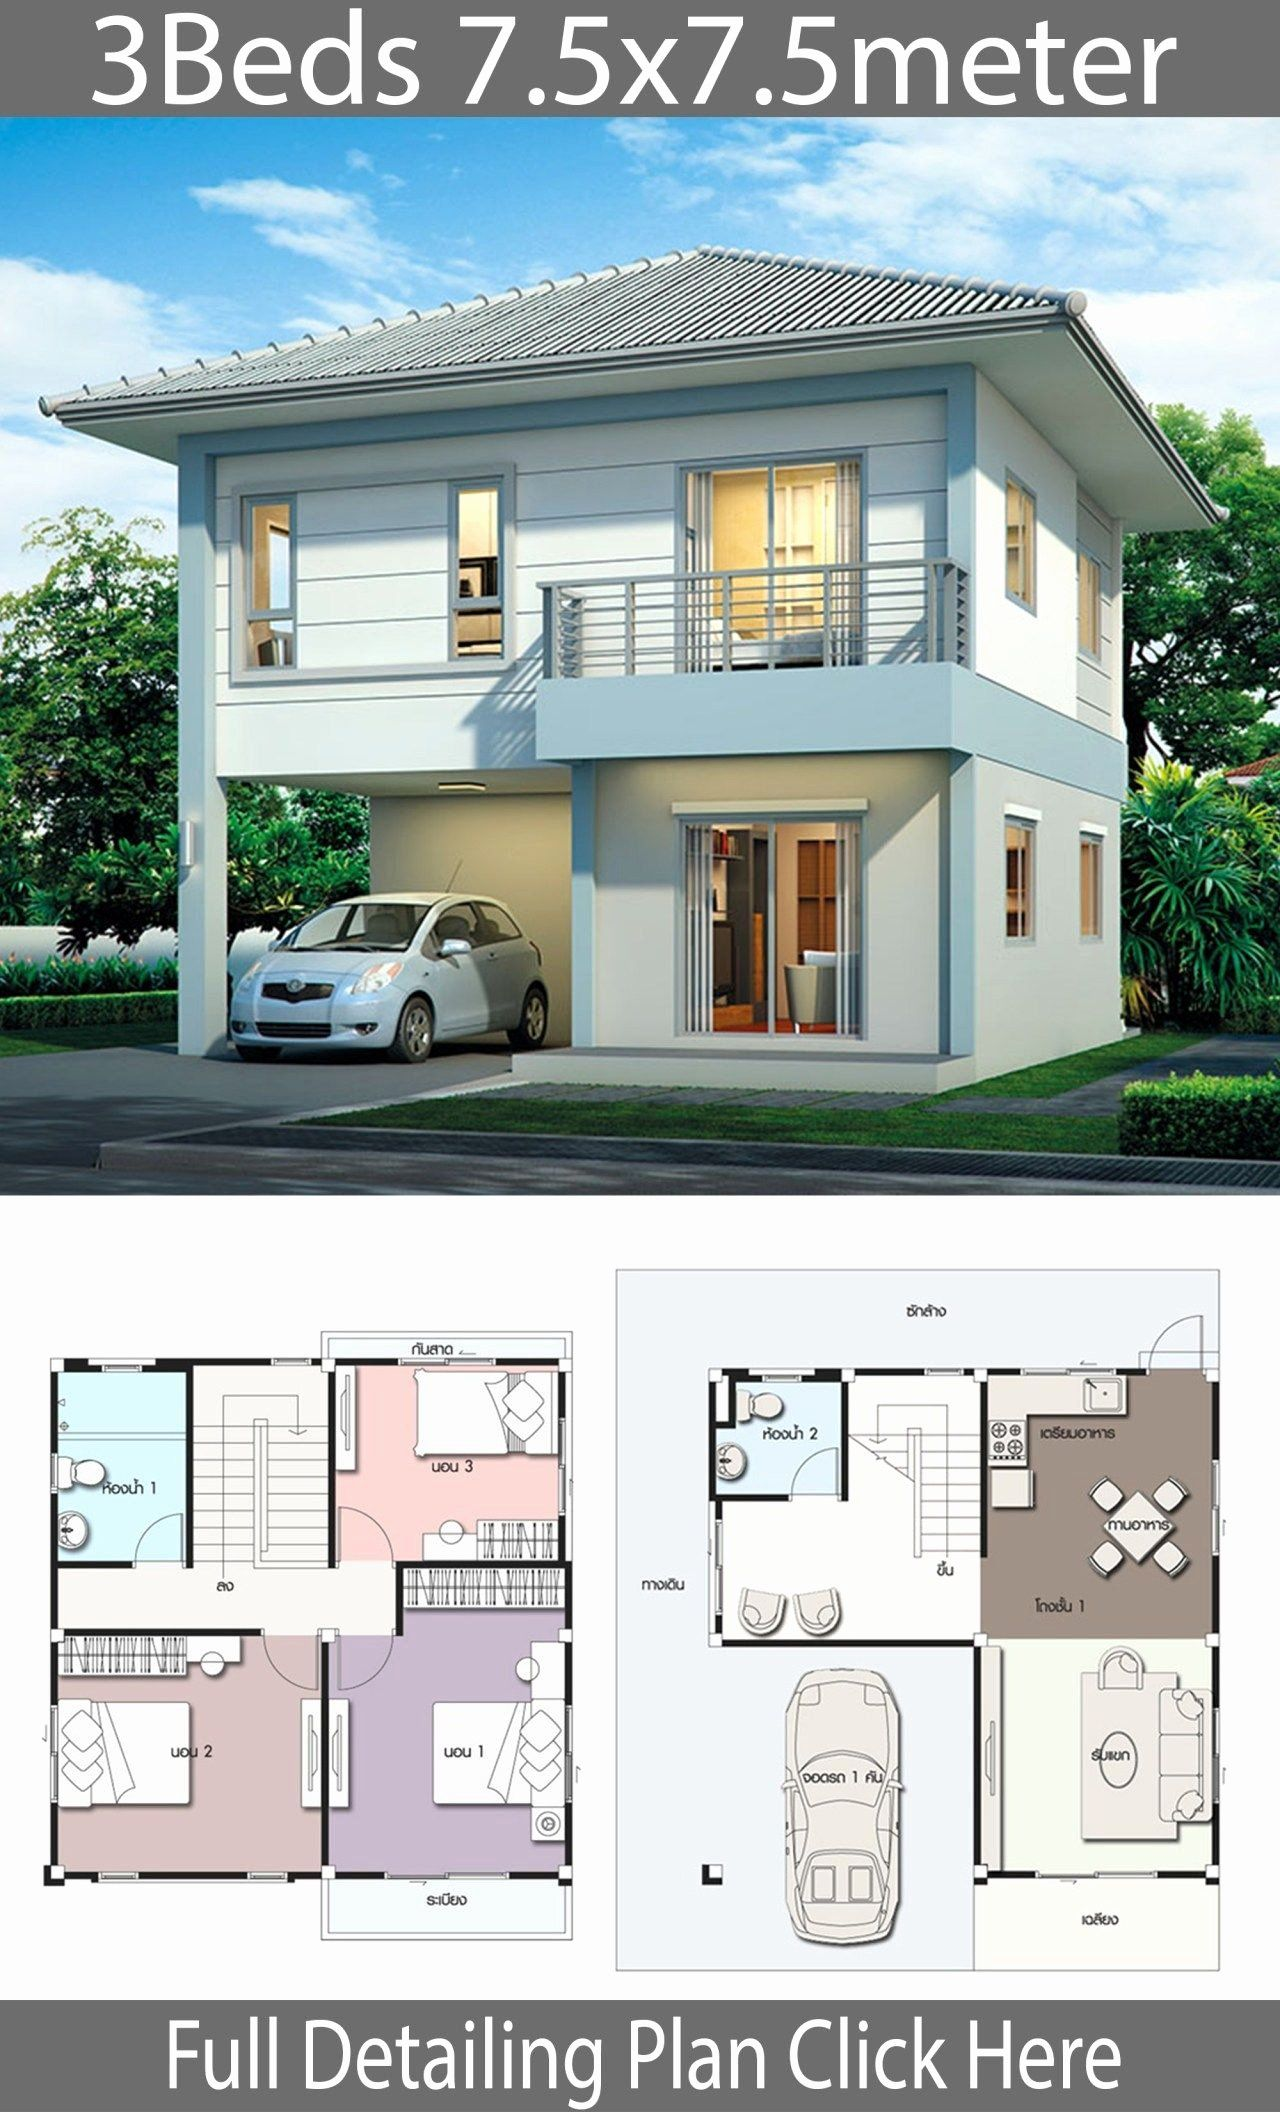 Sims 3 Modern House Ideas Best Of Modern House Design Plan 7 5x7 5m With 3beds Modern House Plans House Construction Plan House Front Design